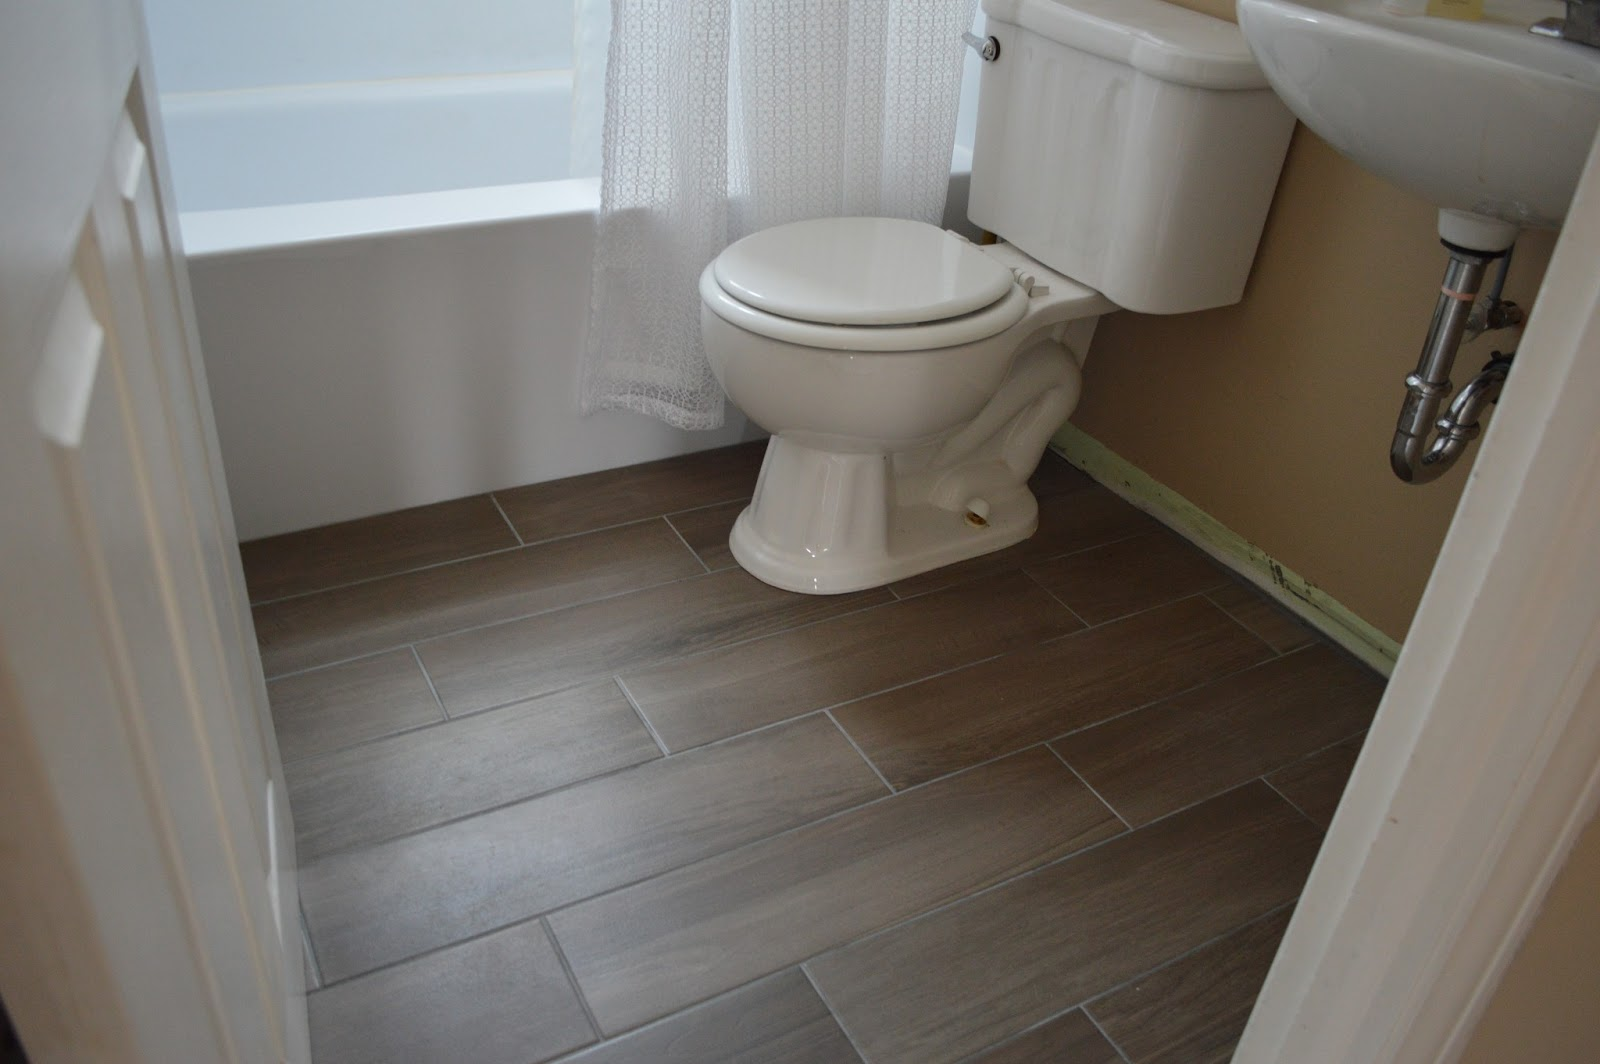 27 ideas and pictures of wood or tile baseboard in bathroom 16 17 18 19 20 11 dailygadgetfo Choice Image